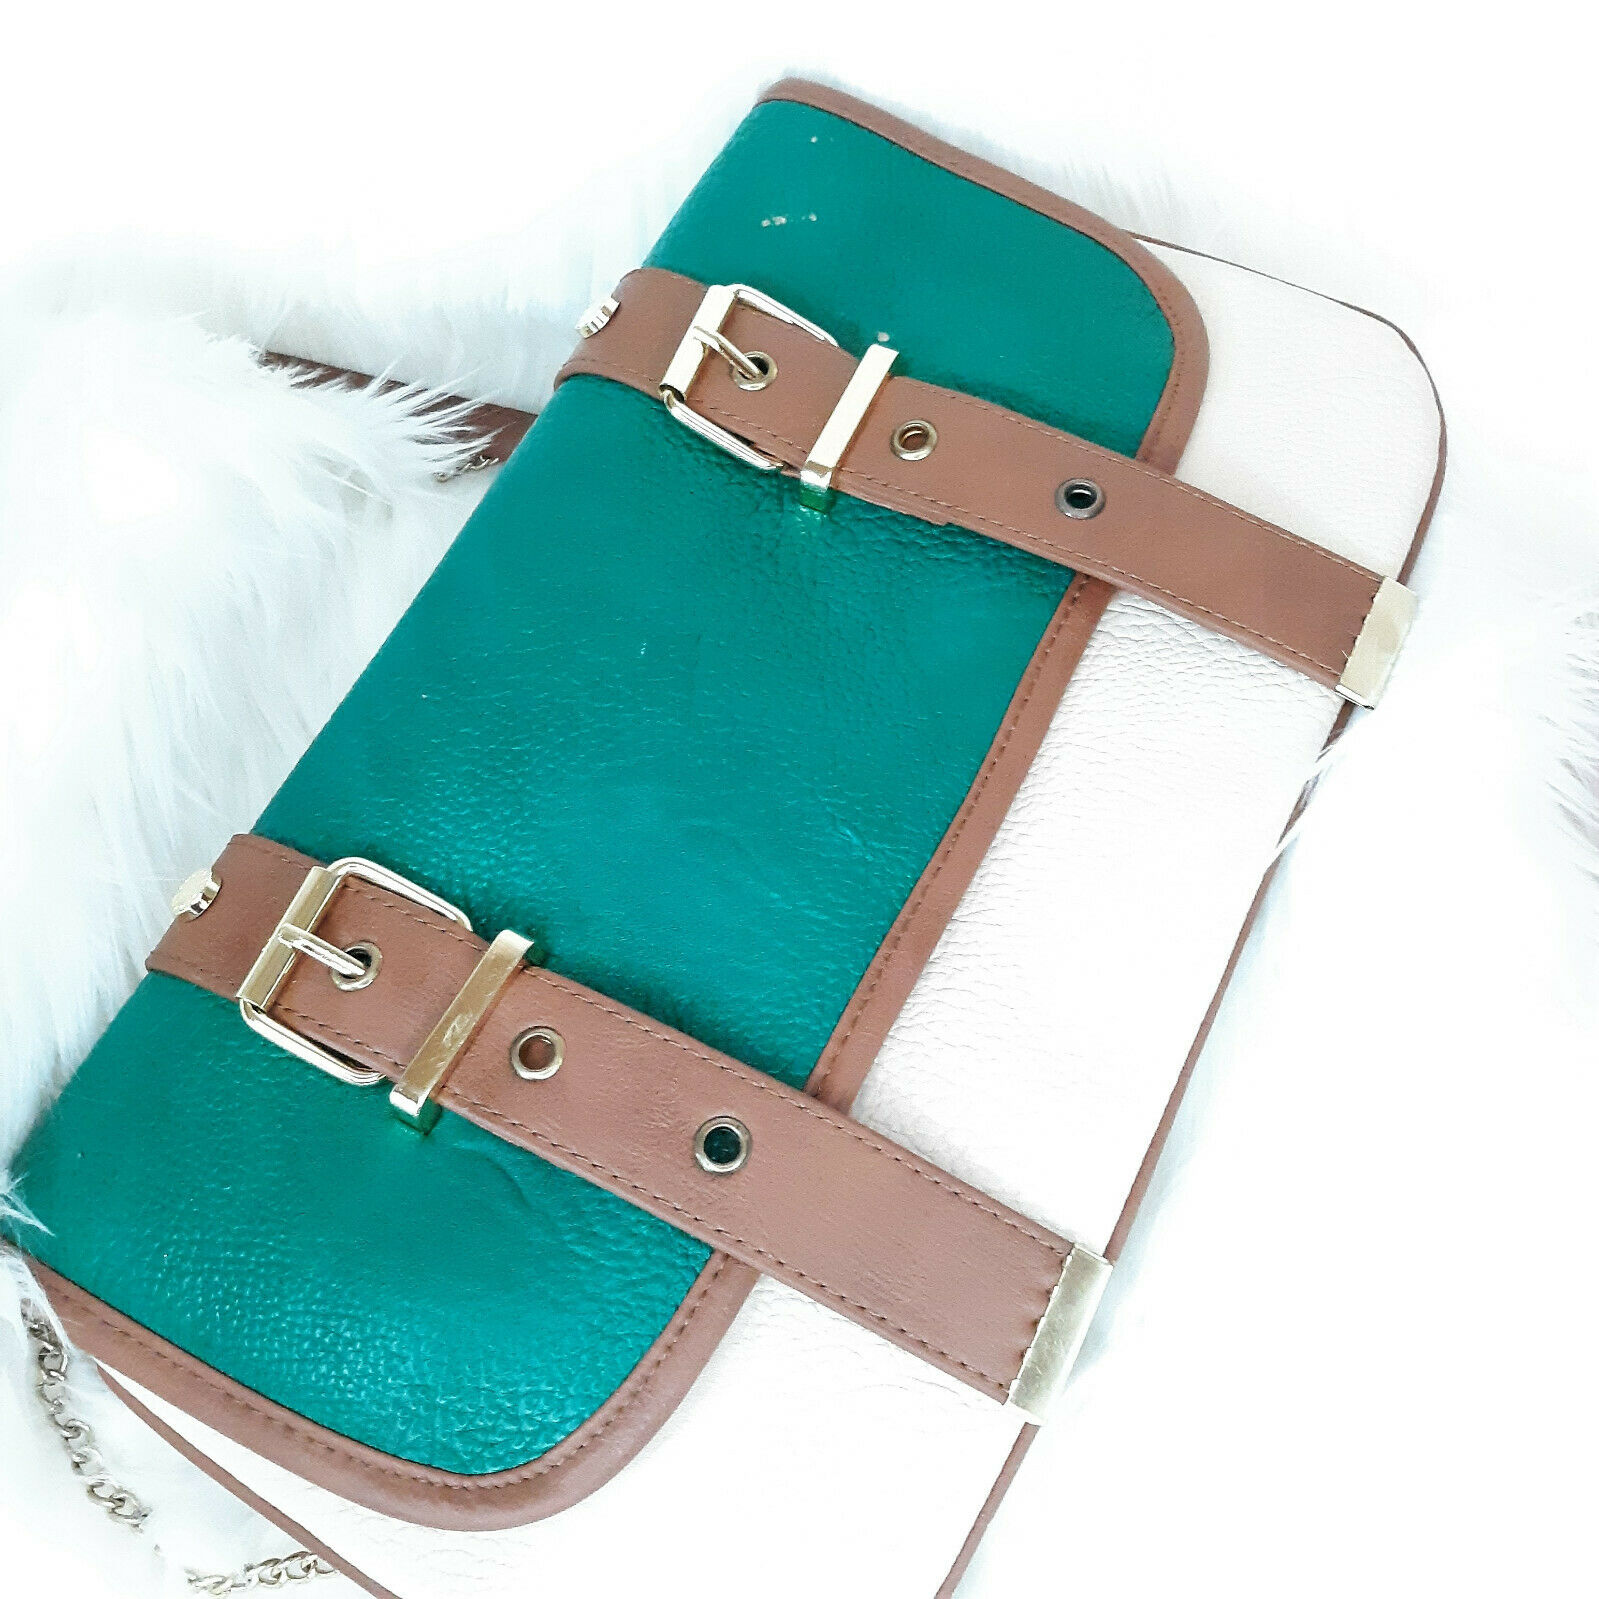 Steve Madden Cross Body Purse Beige & Teal Magnetic Closure New With Tags Flaws